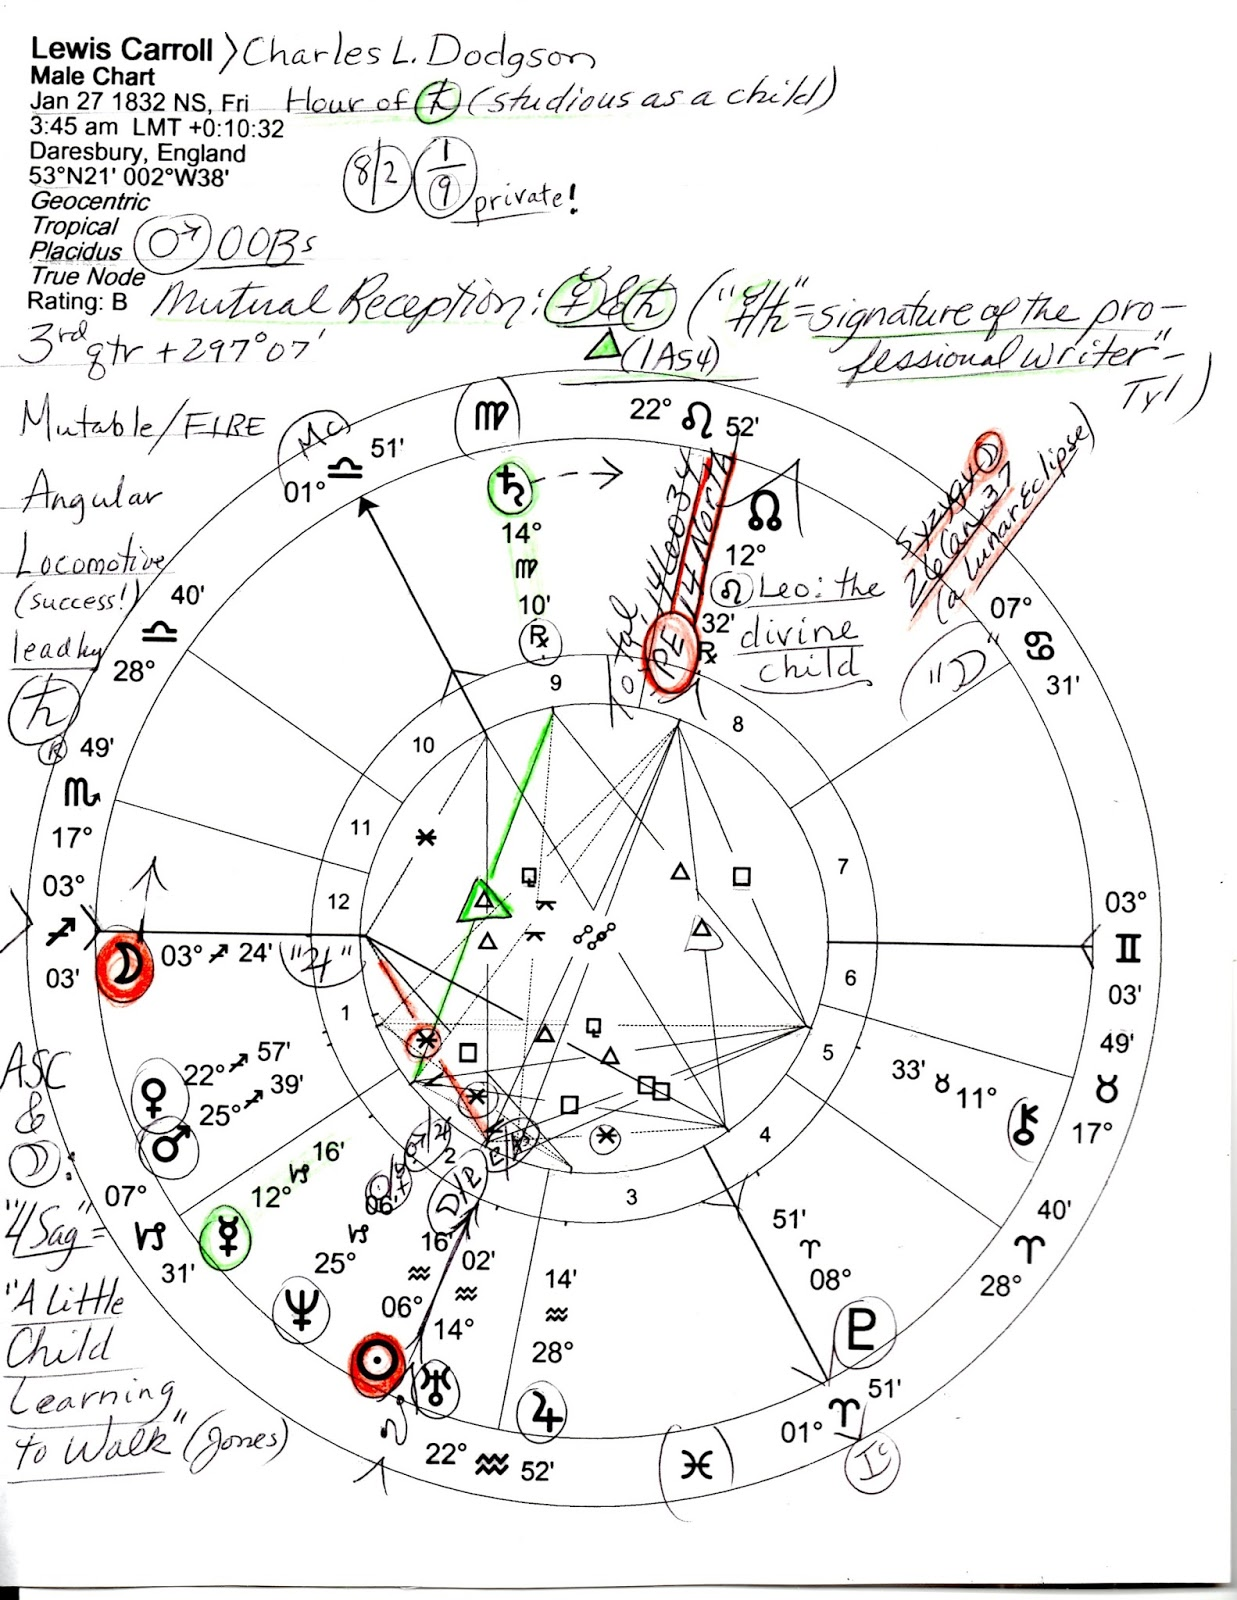 Jude cowell astrology on the chart and unaspected neptune of lewis horoscope lewis carroll charles dodgson january 27 1832 345 am lmt daresbury england hour of saturn chart ruler jupiter in 3rd house providing good geenschuldenfo Image collections